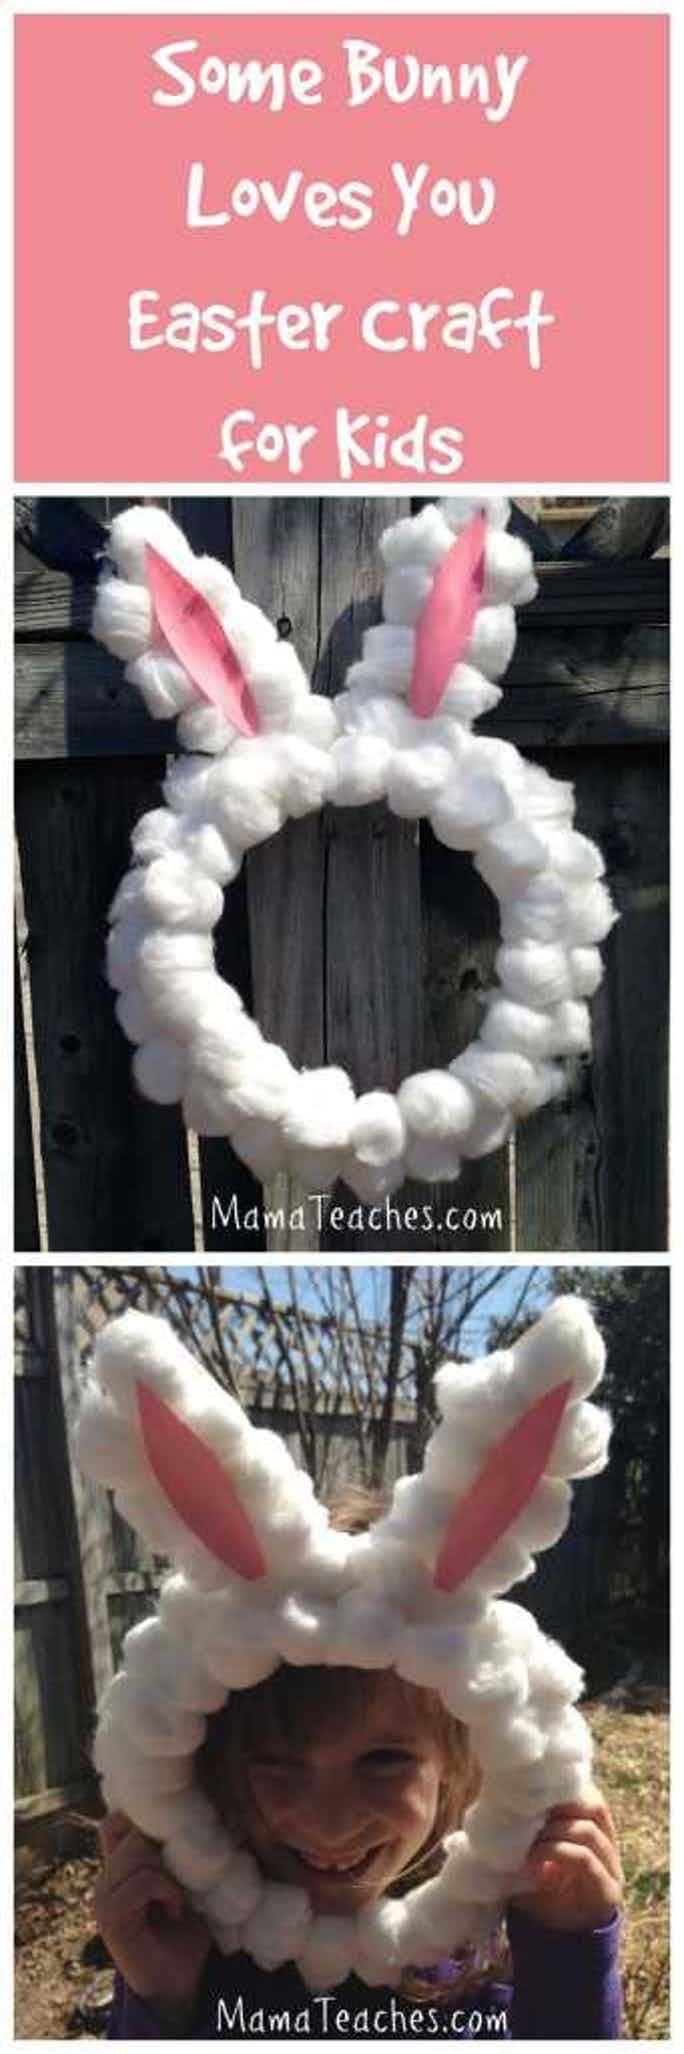 Some Bunny Loves You Easter Wreath/Mask Craft for Kids